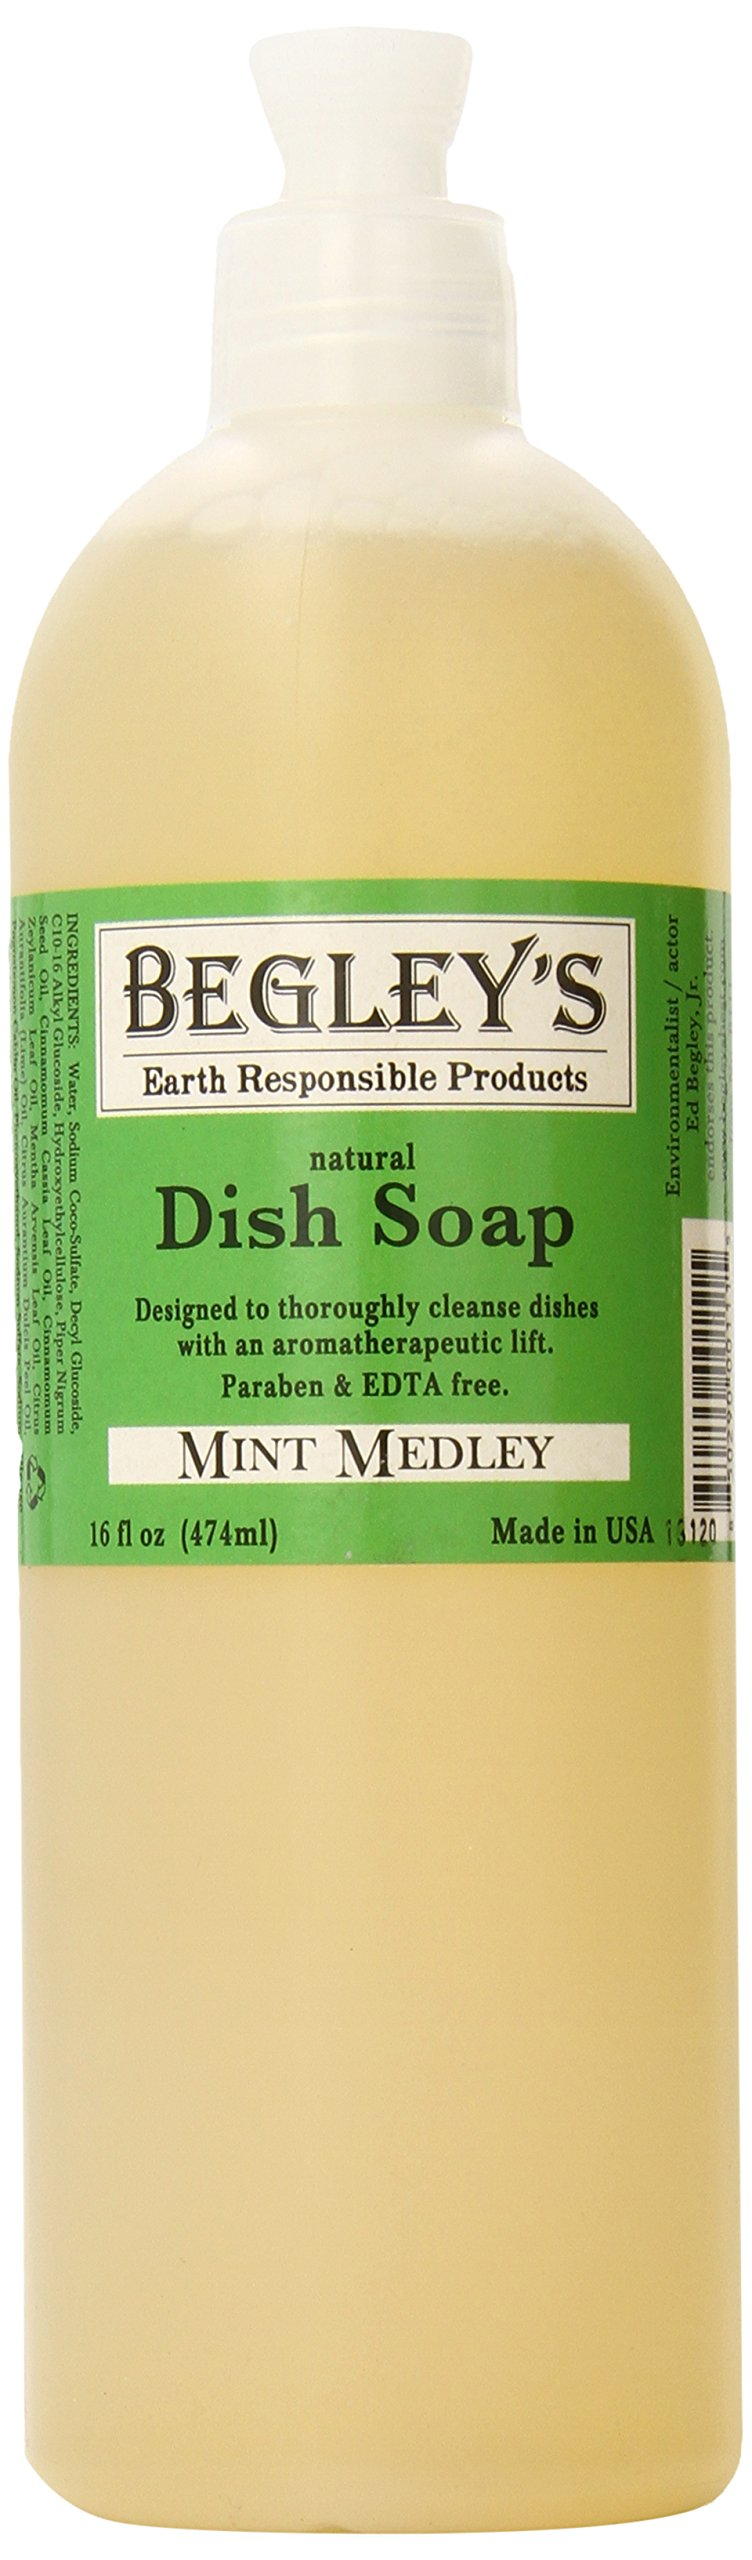 Begley's Natural Dish Soap, Mint Medley, 16 oz, Pack of 6